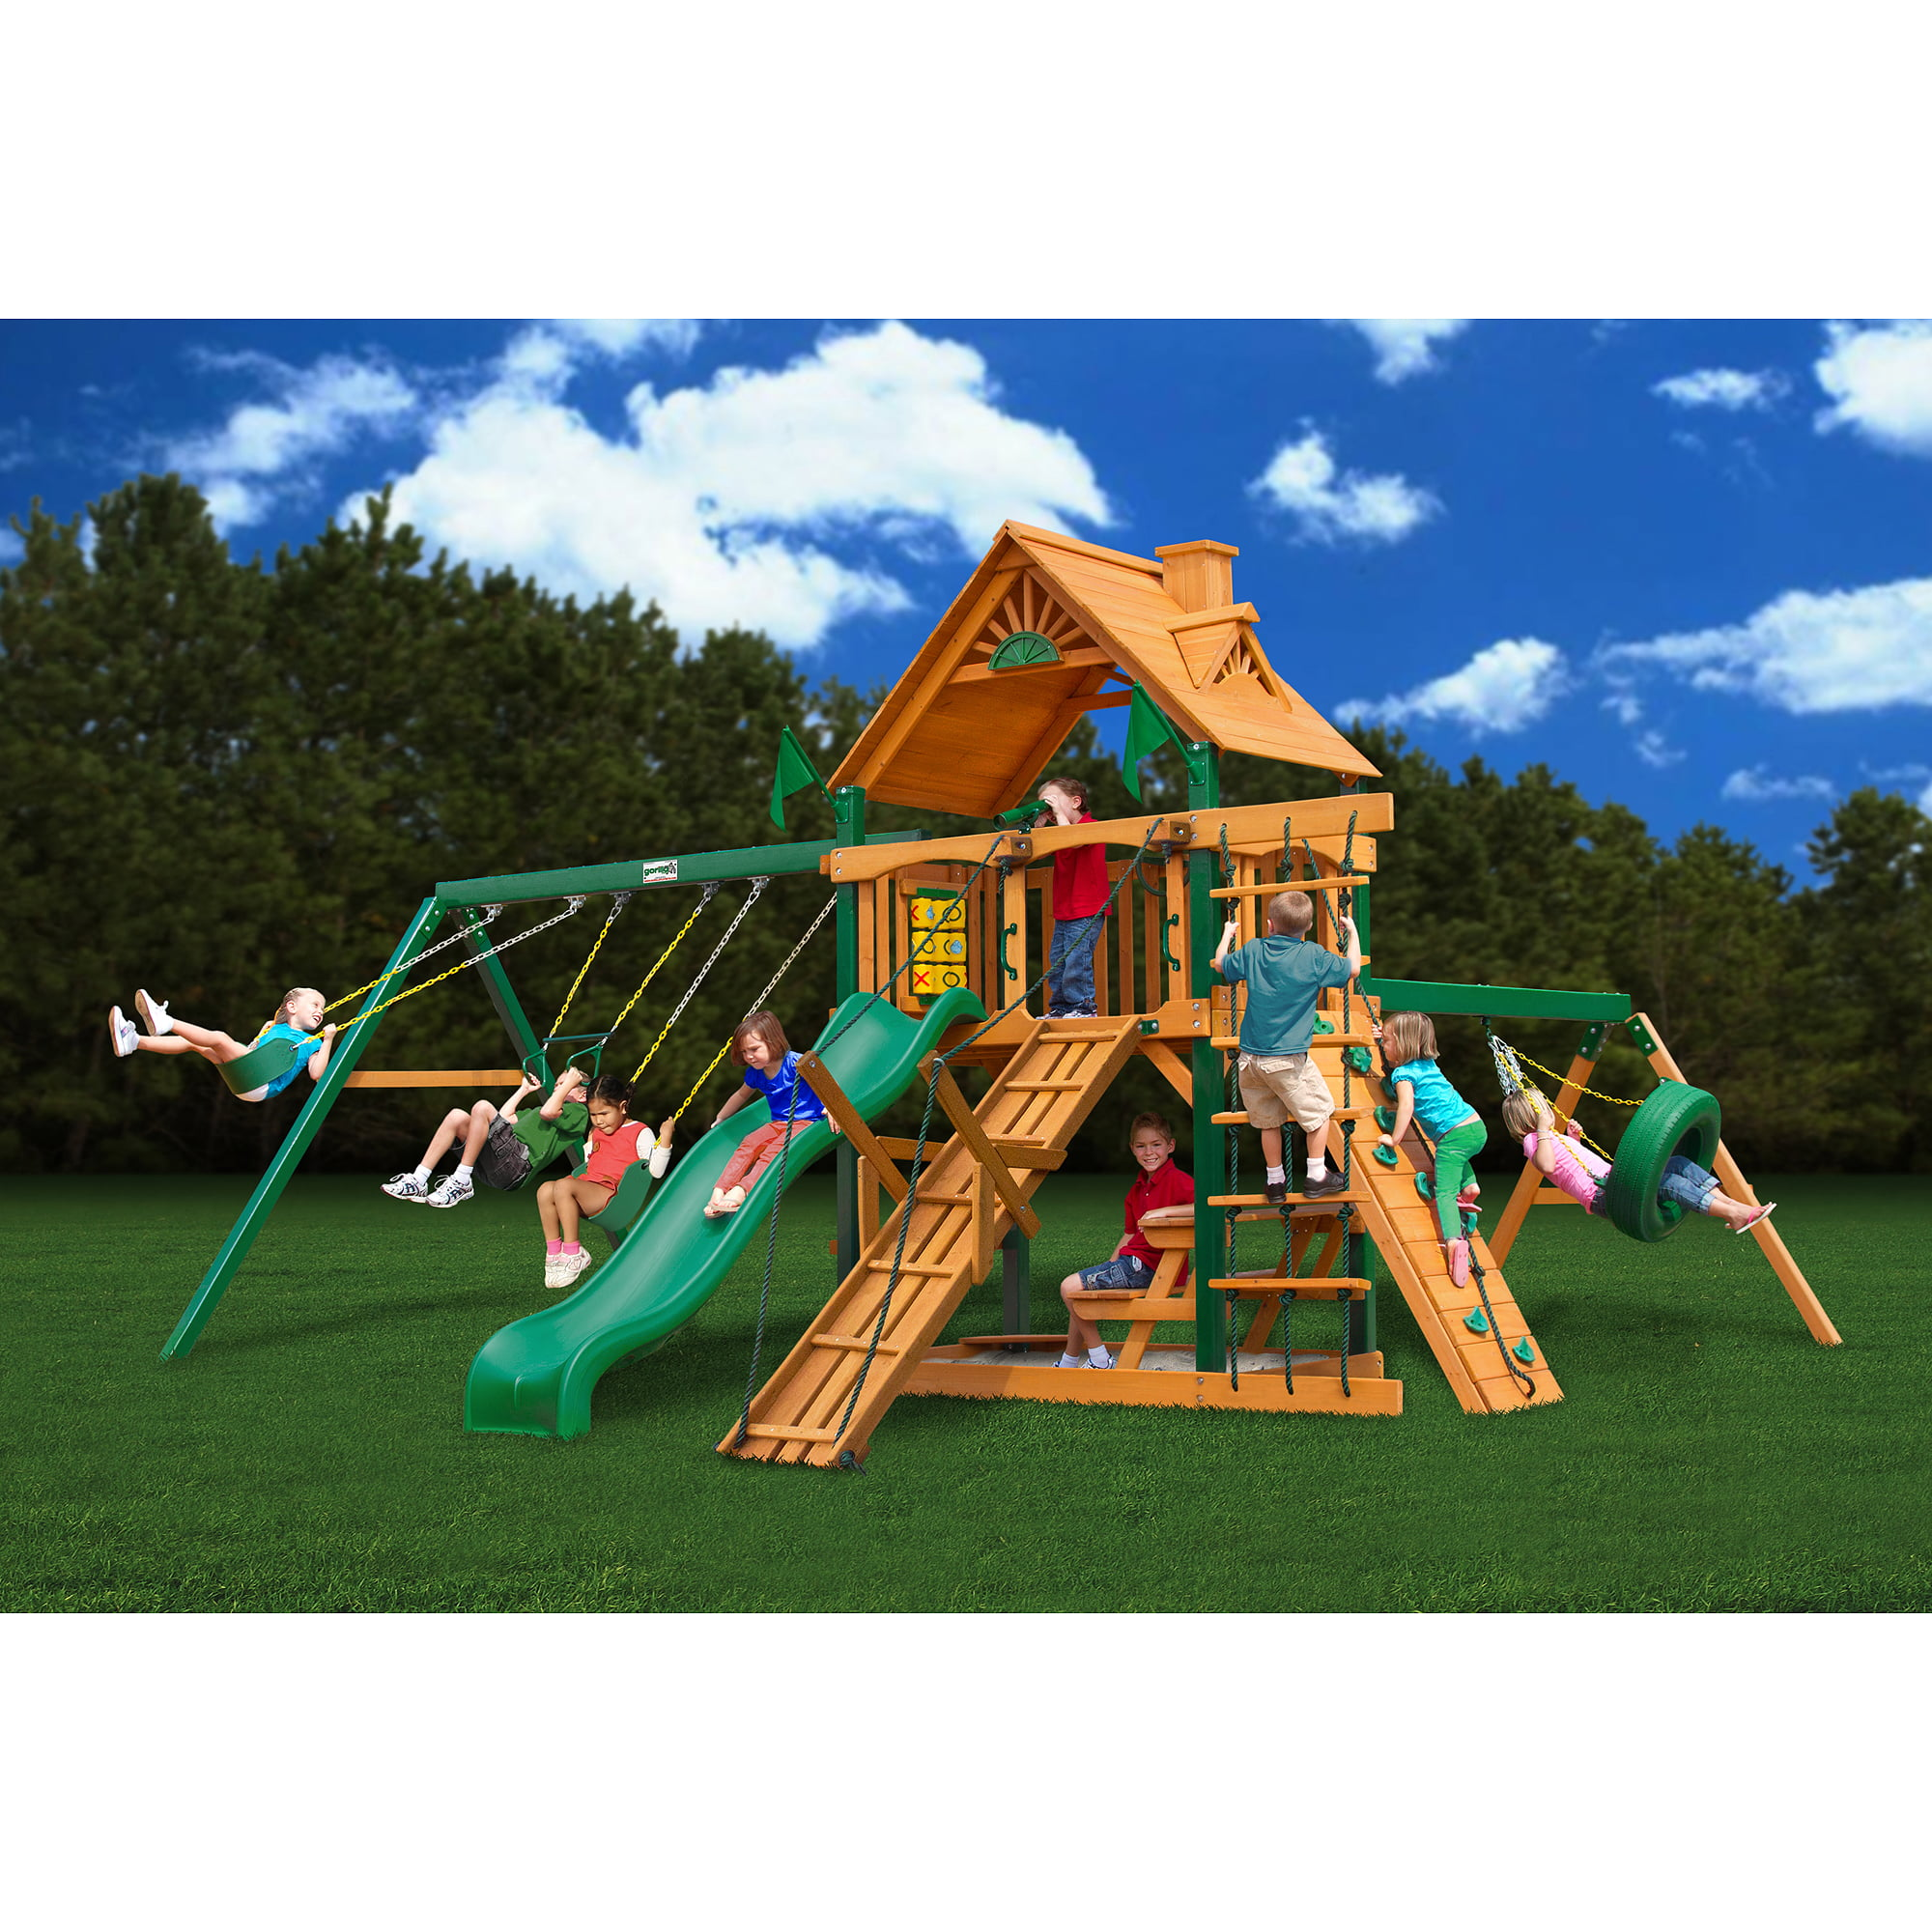 Gorilla Playsets Frontier Cedar Swing Set with Timber Shield Posts by Gorilla Playsets